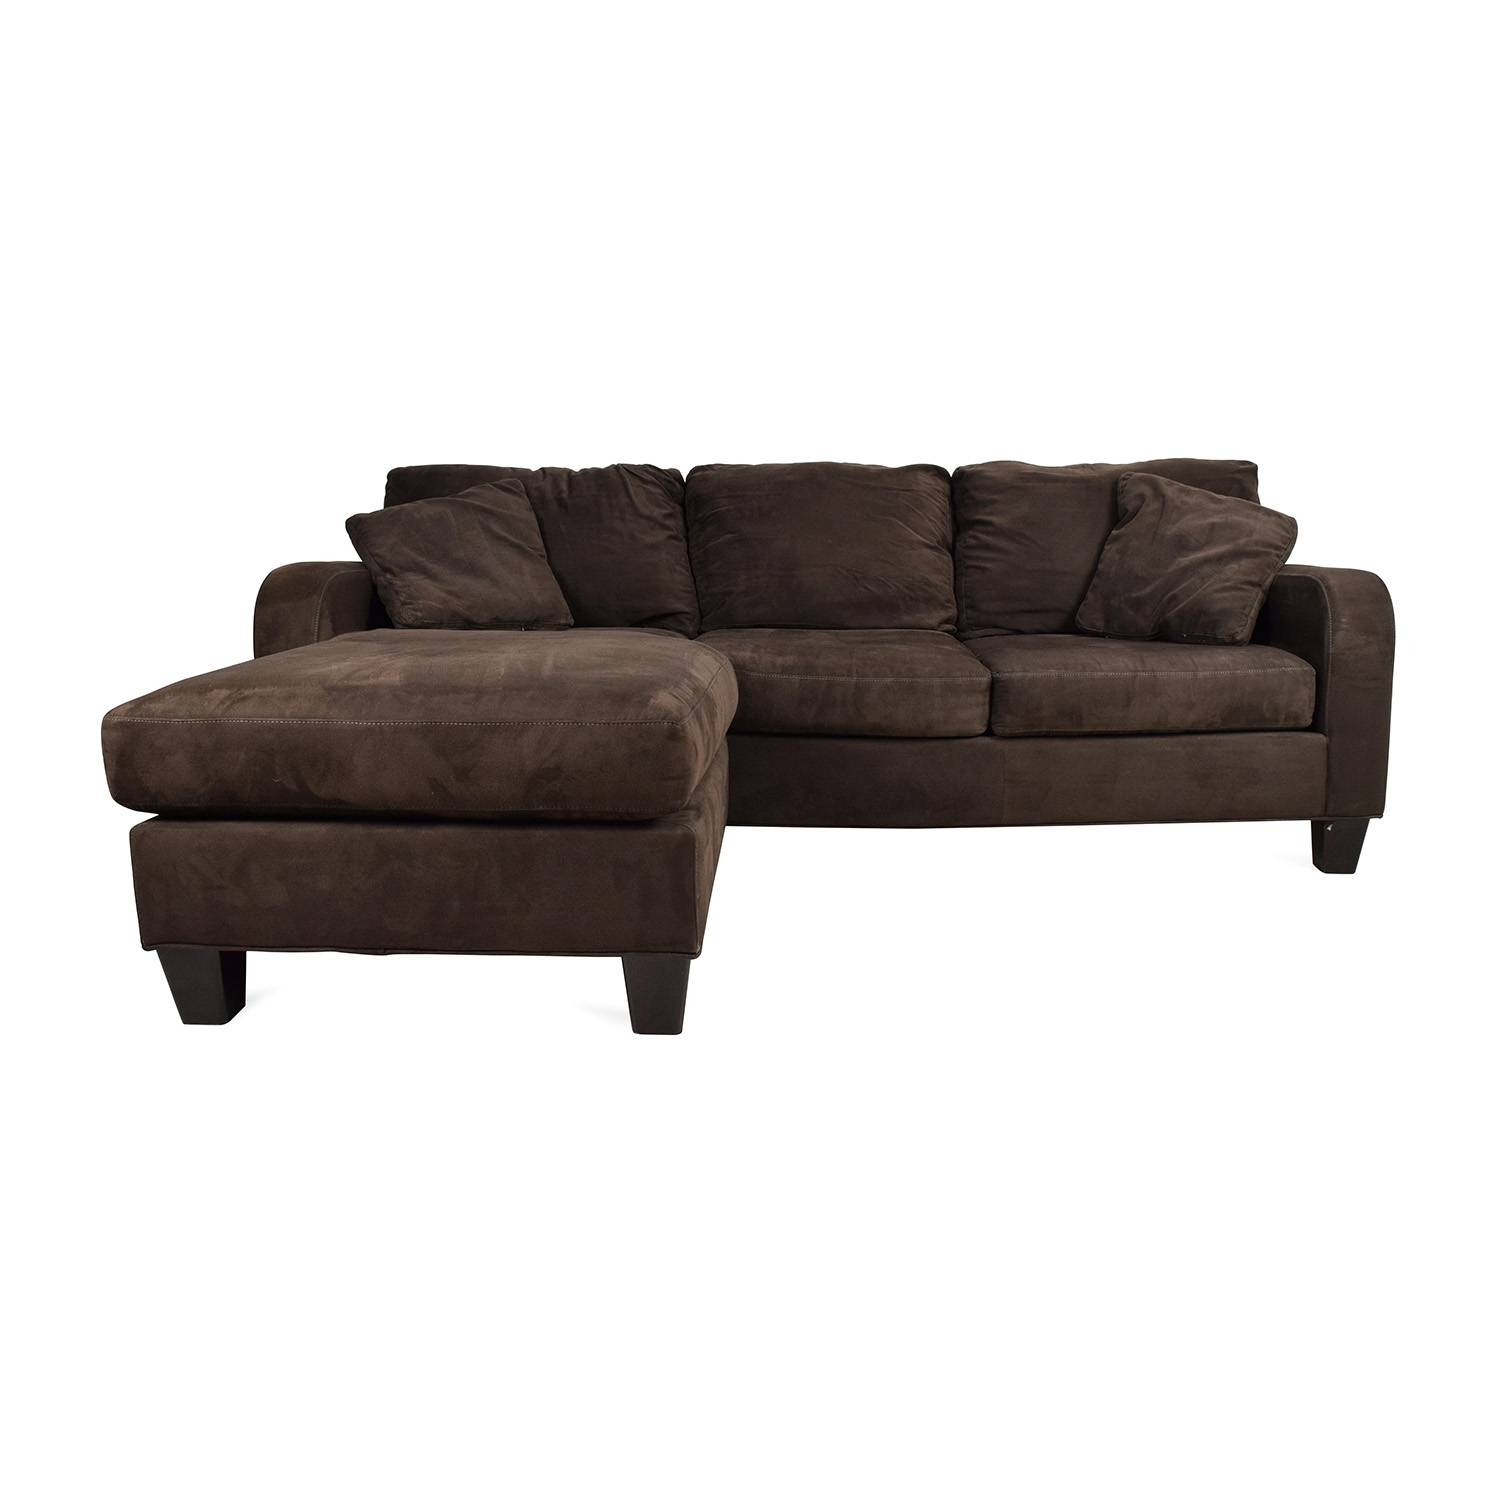 44% Off - Macy's Macy's Modern Concepts Charcoal Gray Corduroy within Cindy Crawford Sleeper Sofas (Image 2 of 15)